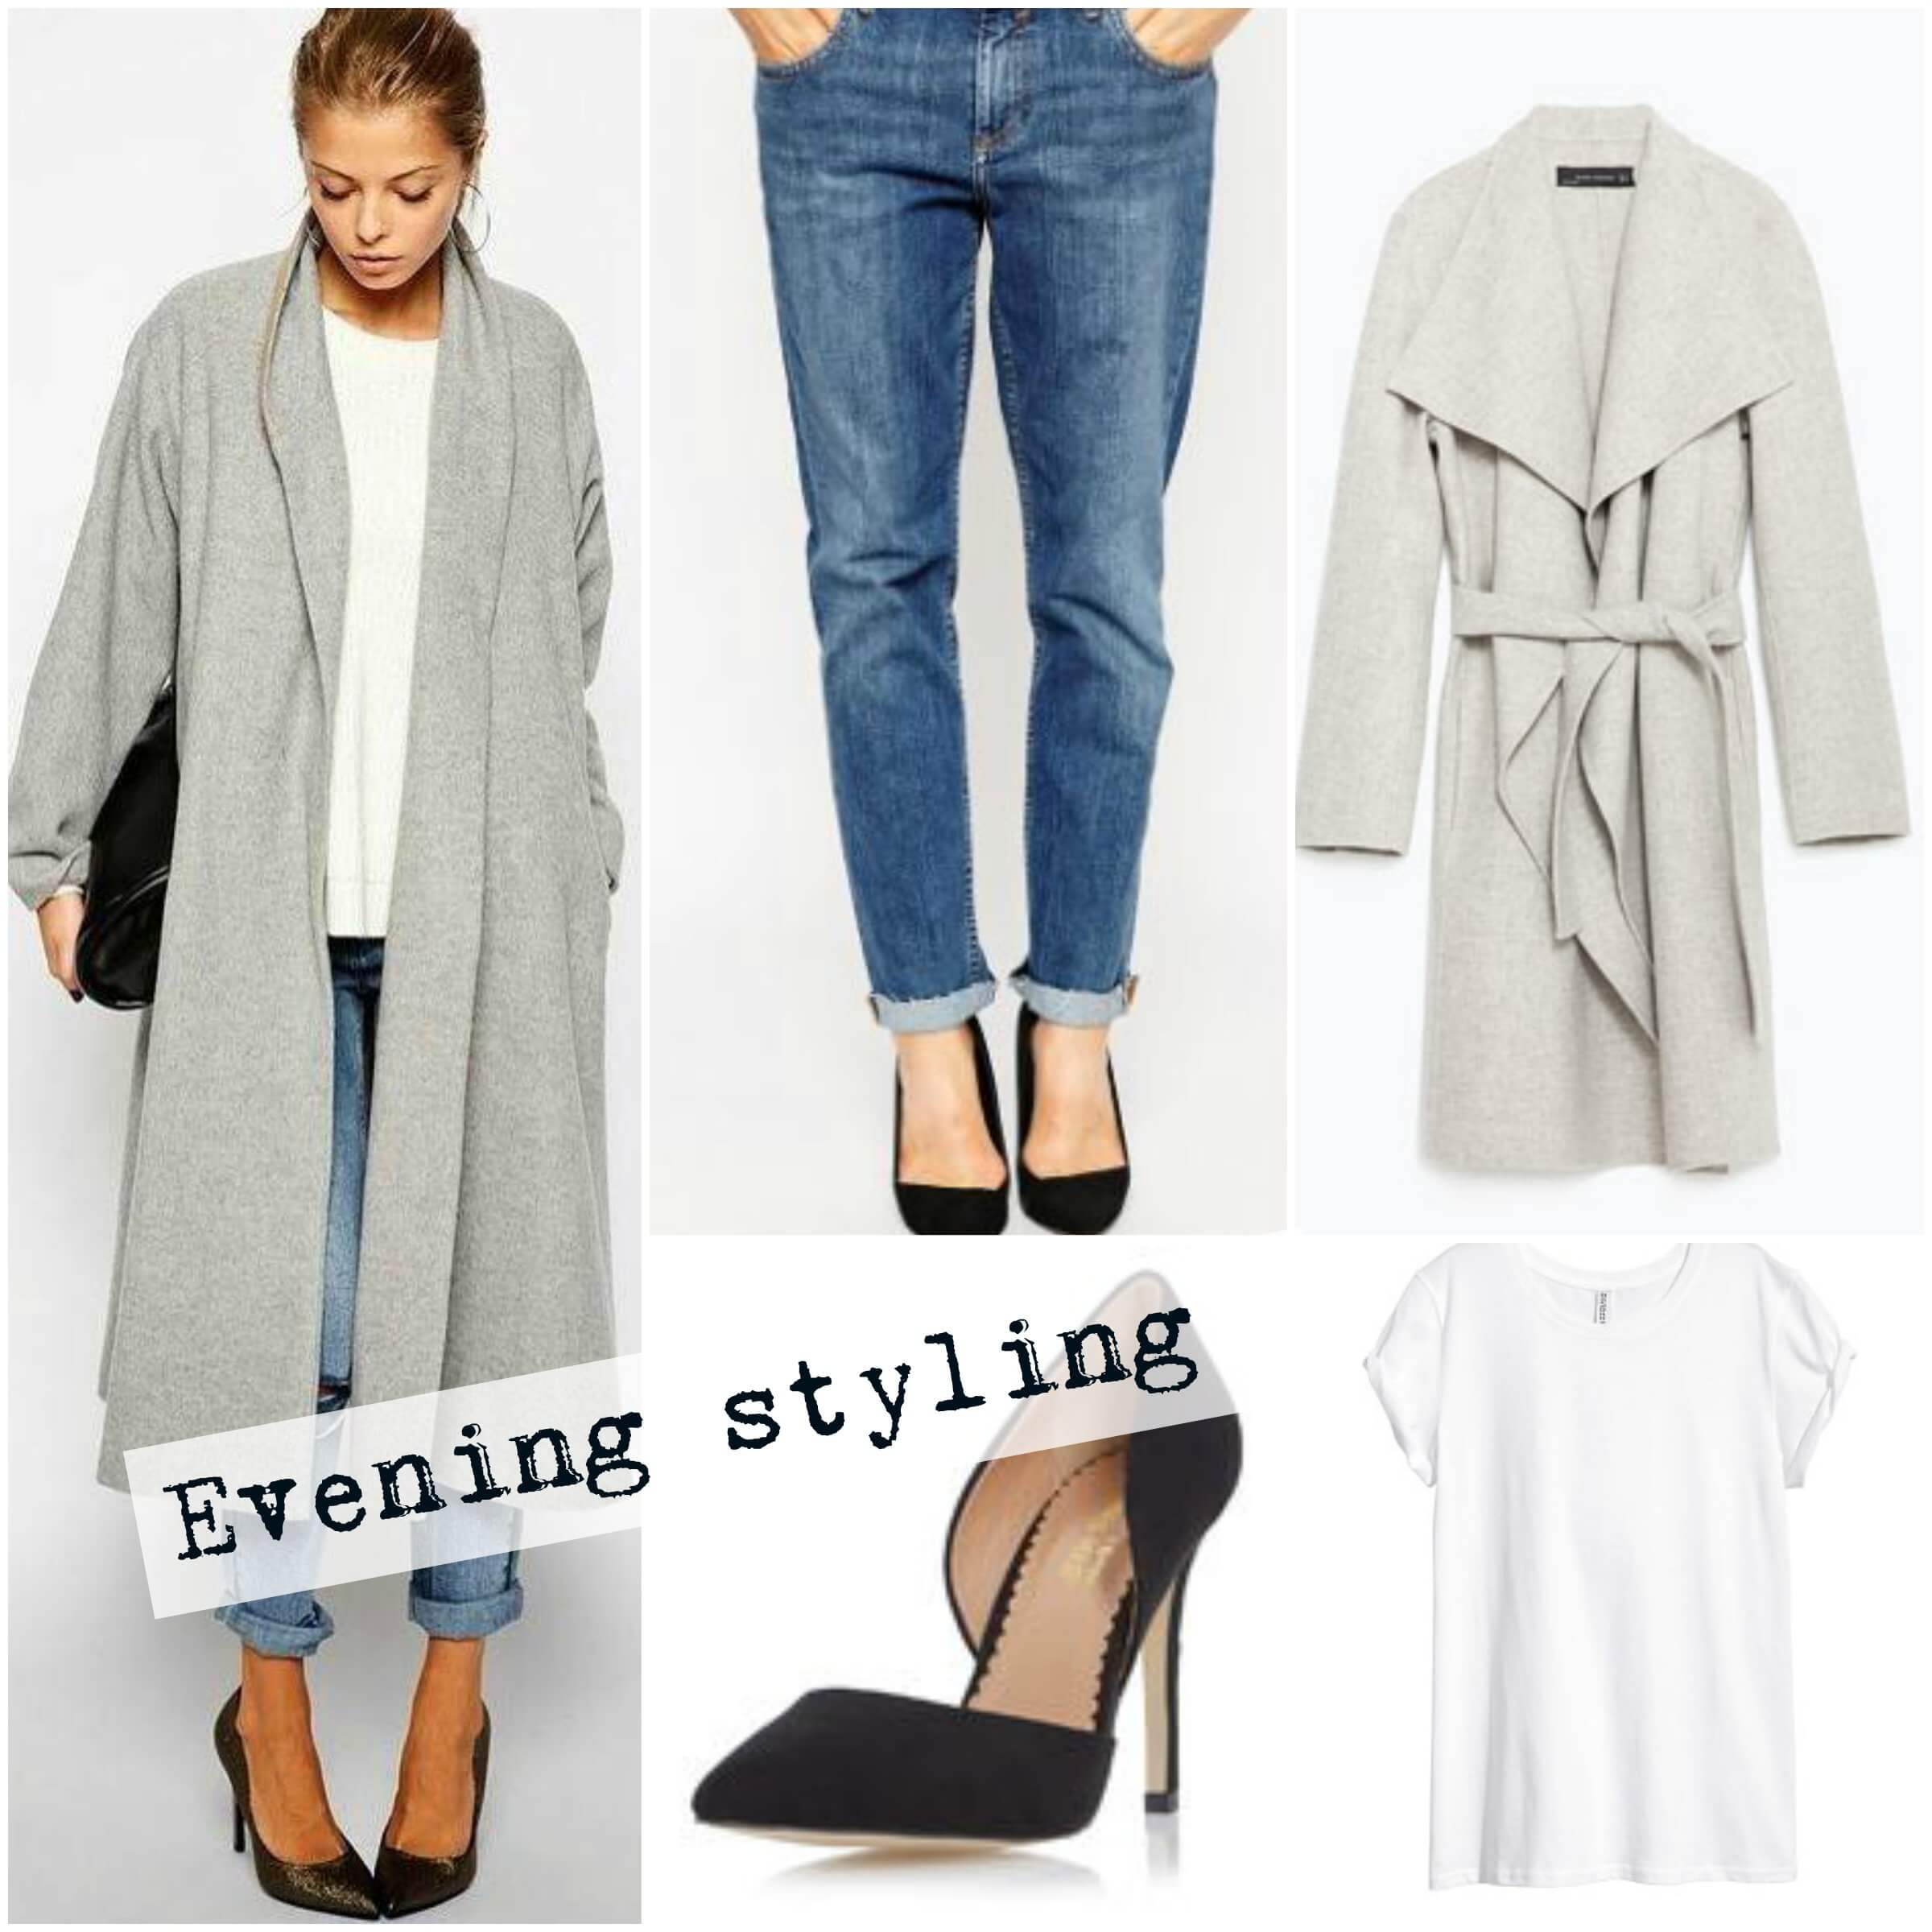 Evening Styling